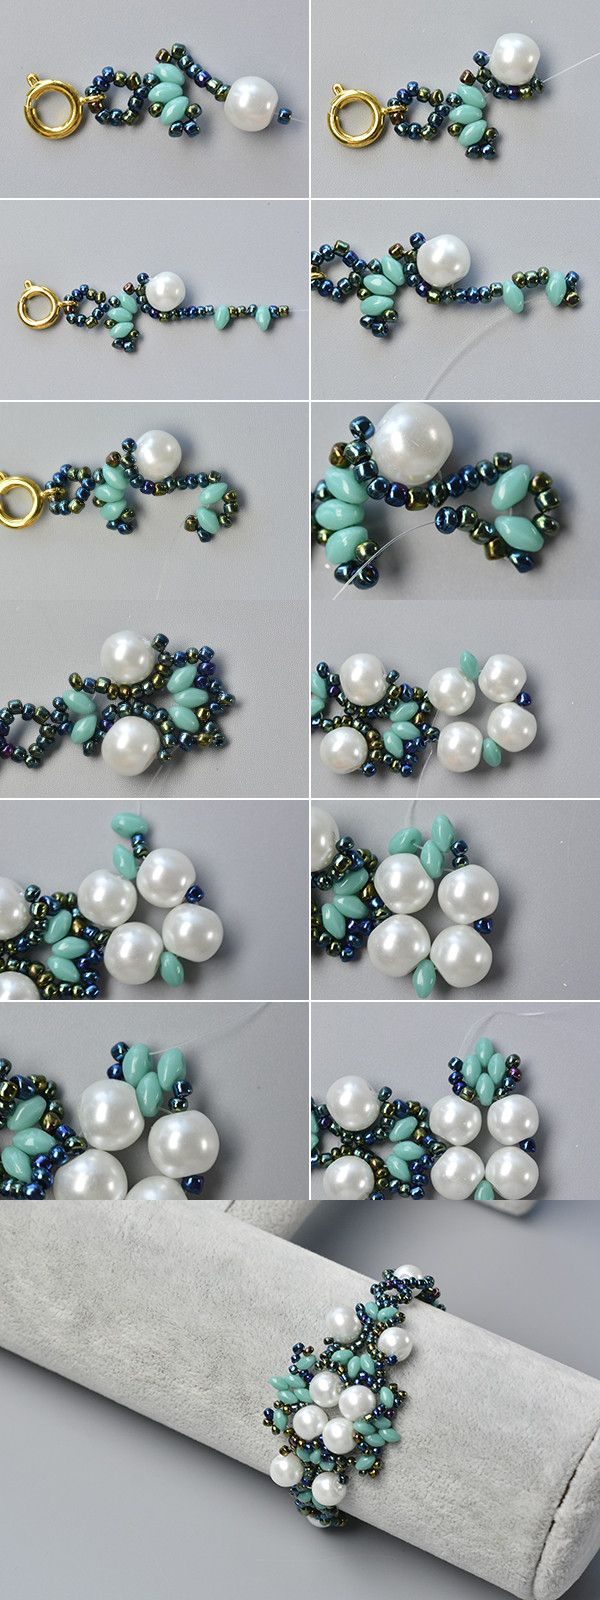 Like the 2-hole seed beads flower bracelet?The details will be published by LC.Pandahall.com soon.